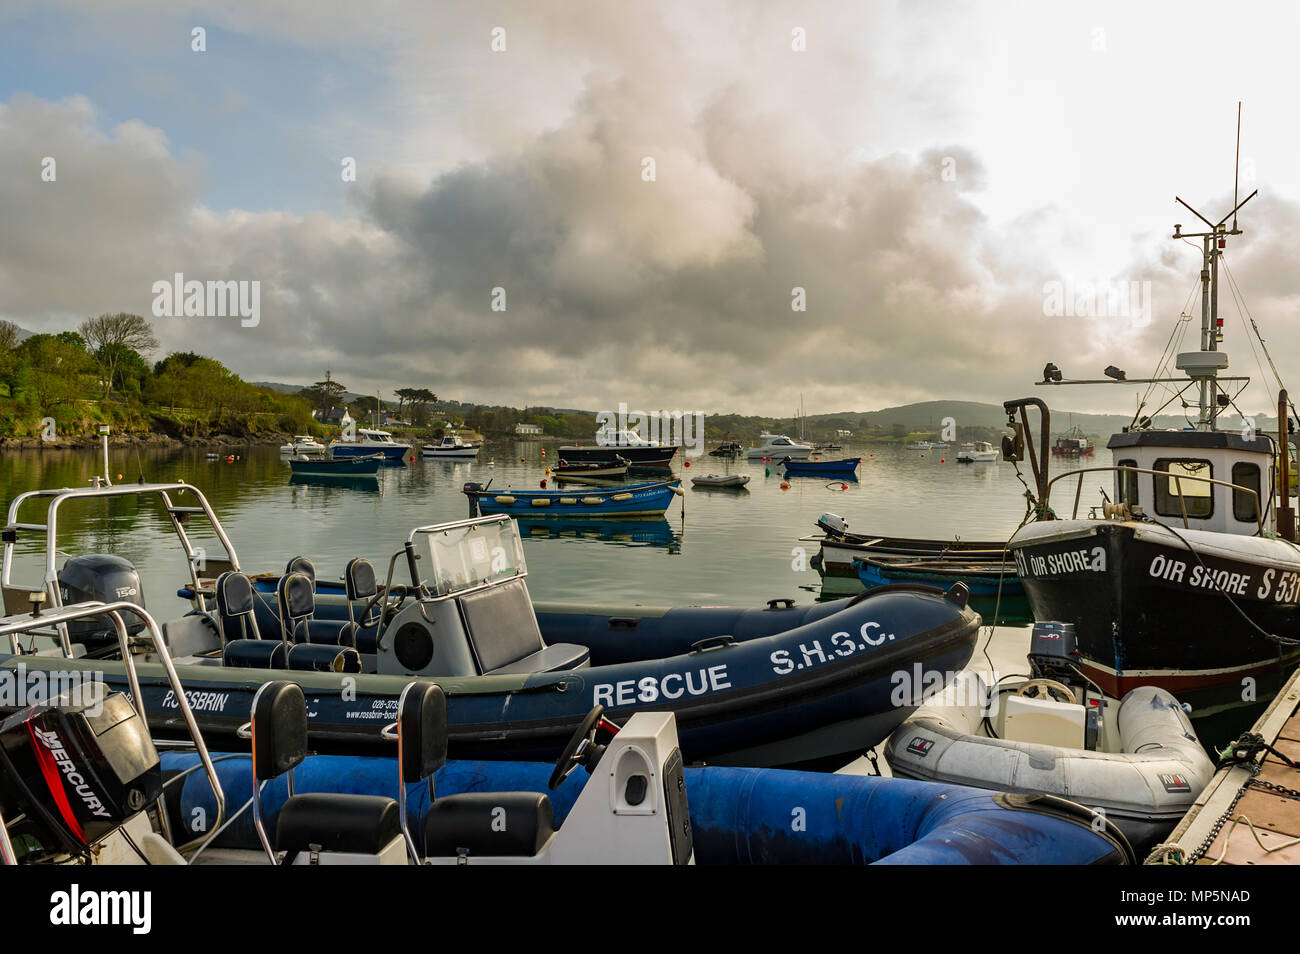 Moored boats in Schull Harbour, County Cork, Ireland with copy space. - Stock Image